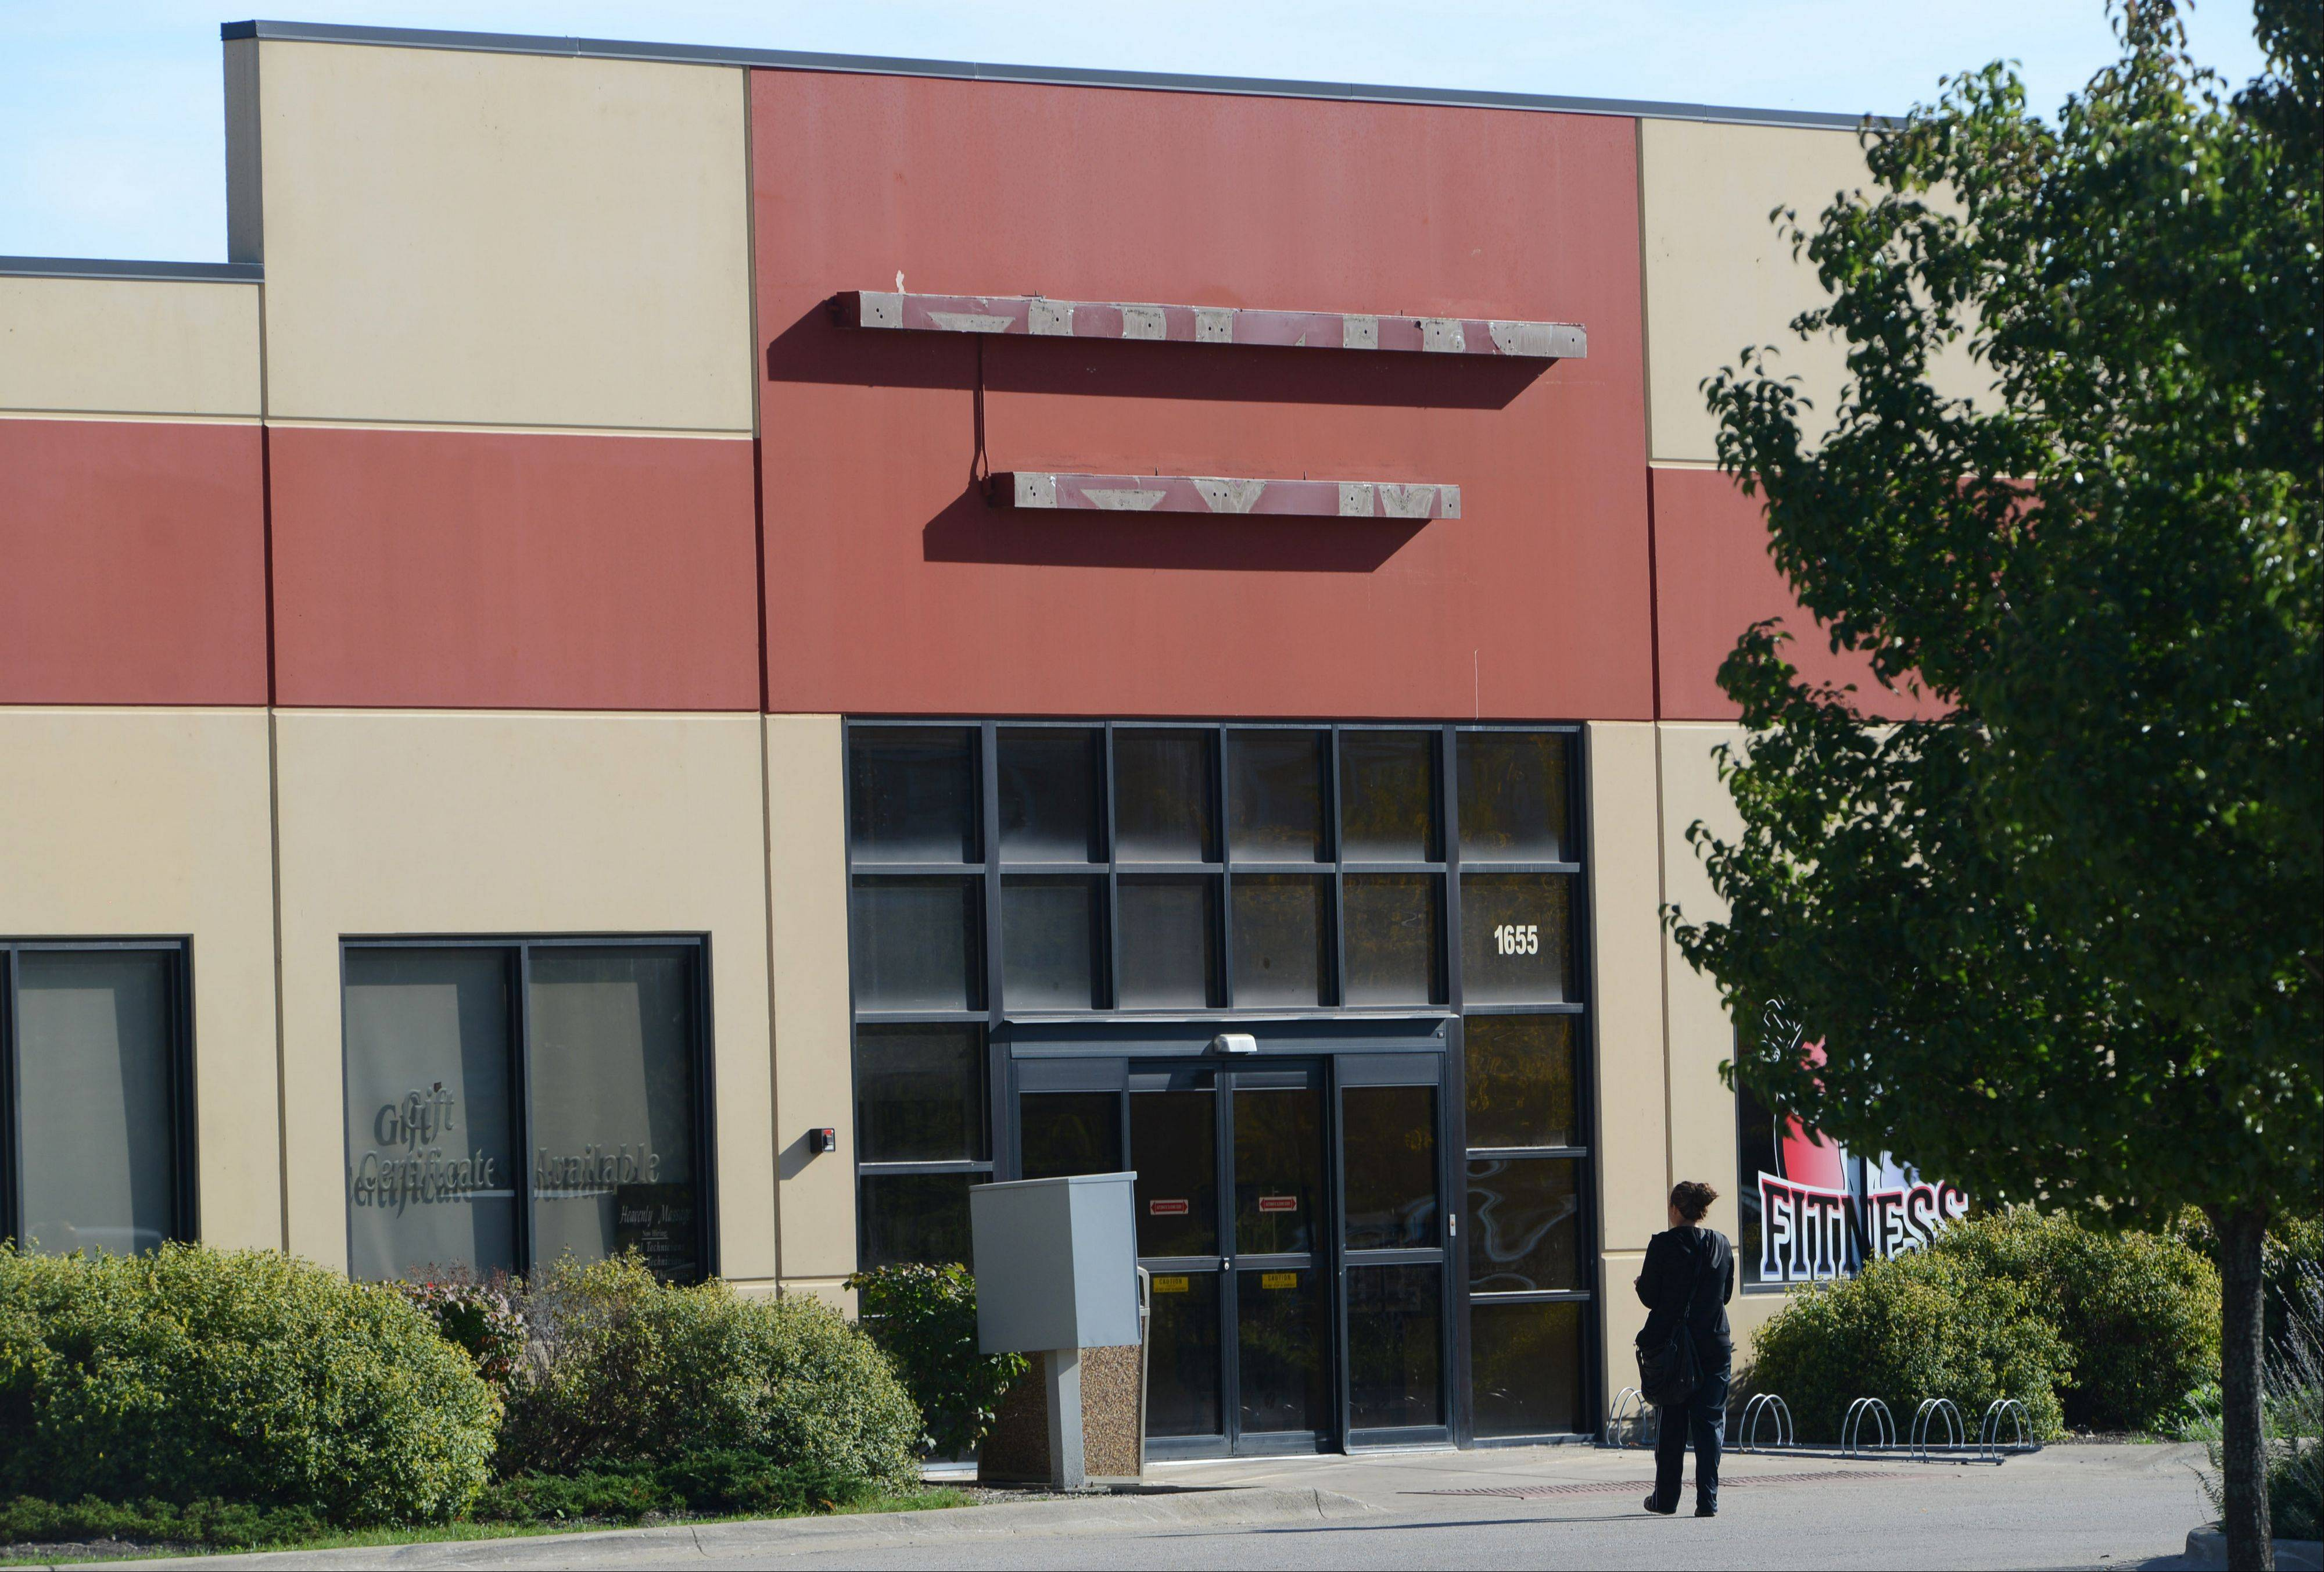 Gurnee park board OKs borrowing $8.5 million for Gold's Gym